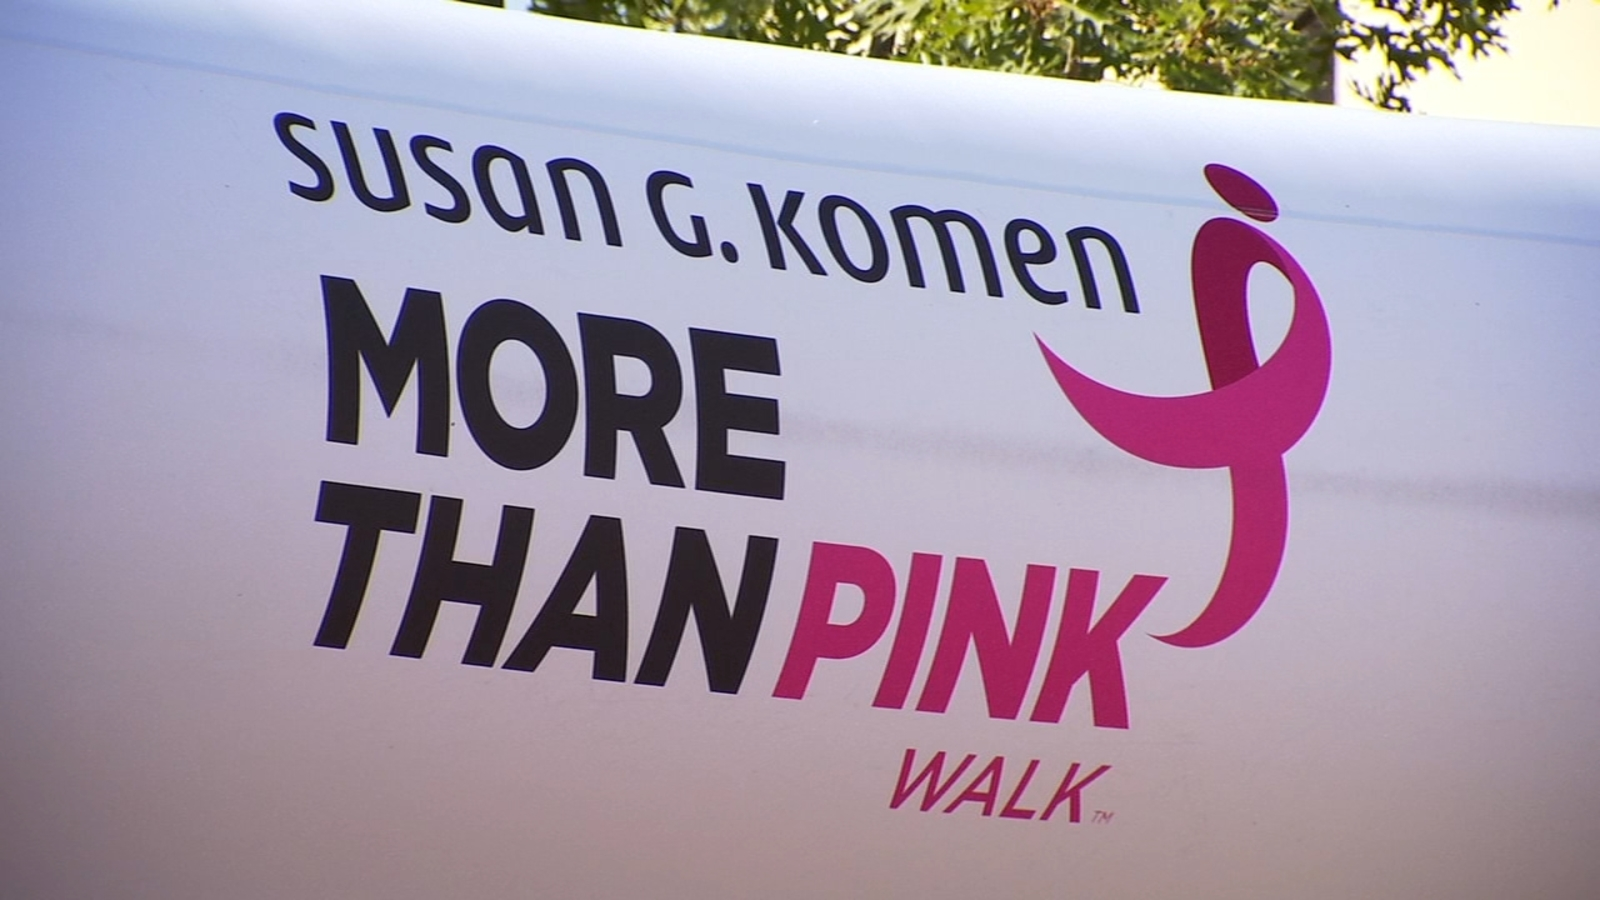 Breast cancer awareness walk is about 'more than pink' for community